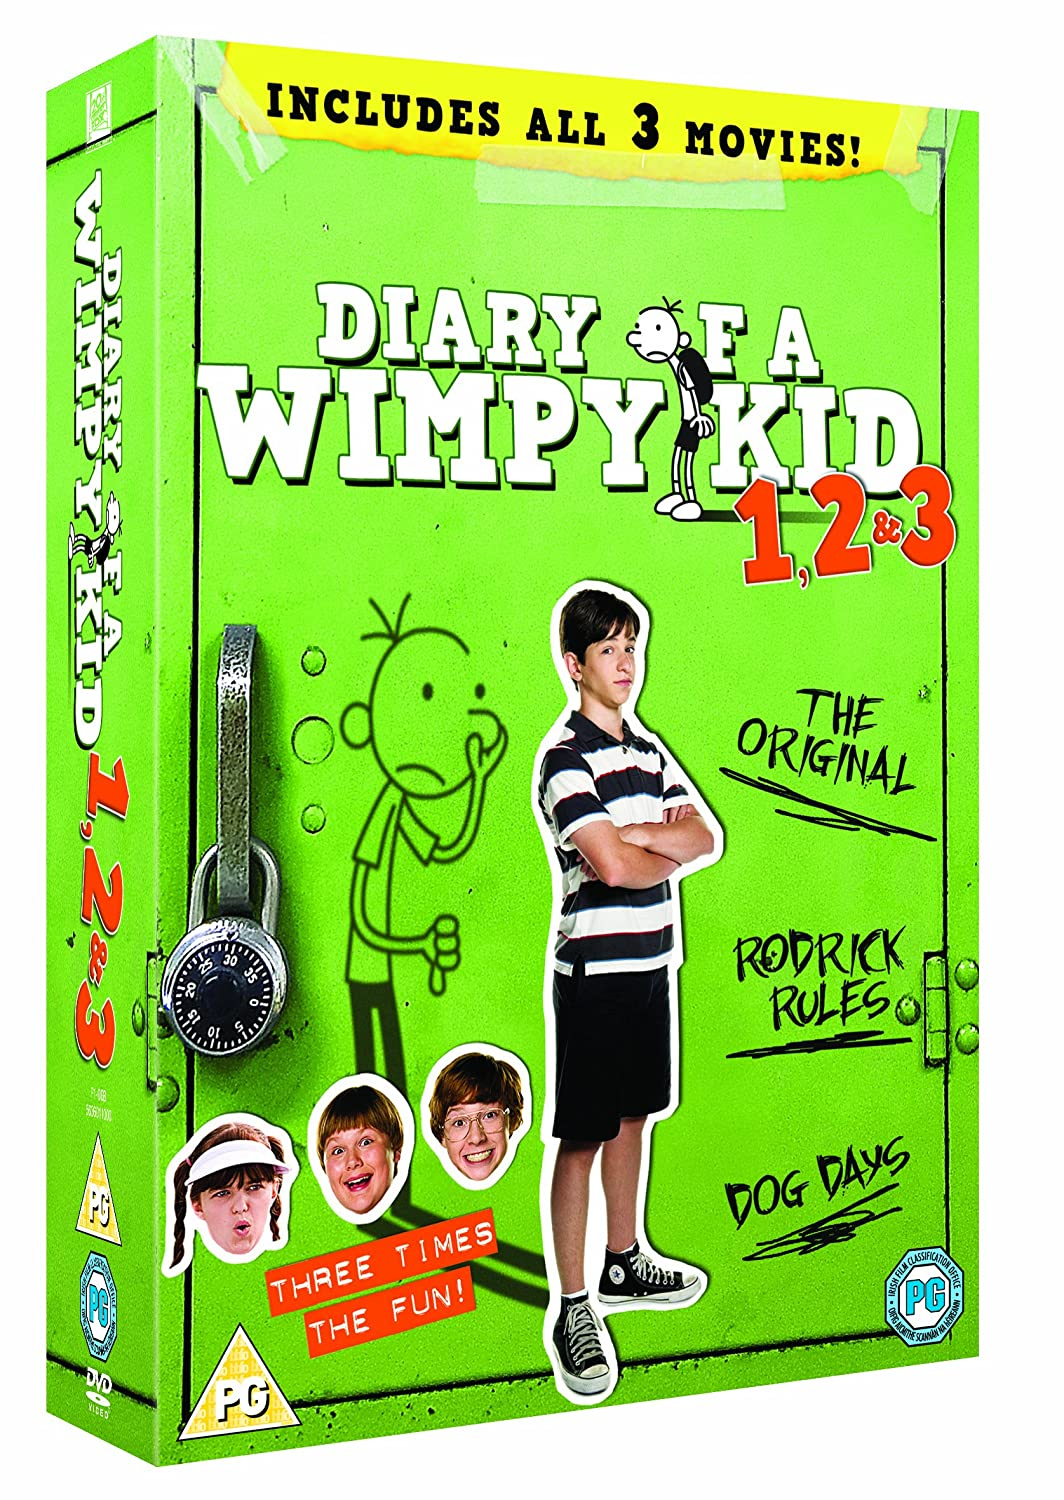 Diary of a wimpy kid 1 3 dvd 2010 amazon zachary gordon diary of a wimpy kid 1 3 dvd 2010 amazon zachary gordon devon bostick steve zahn rachael harris robert capron david bowers dvd blu ray solutioingenieria Images